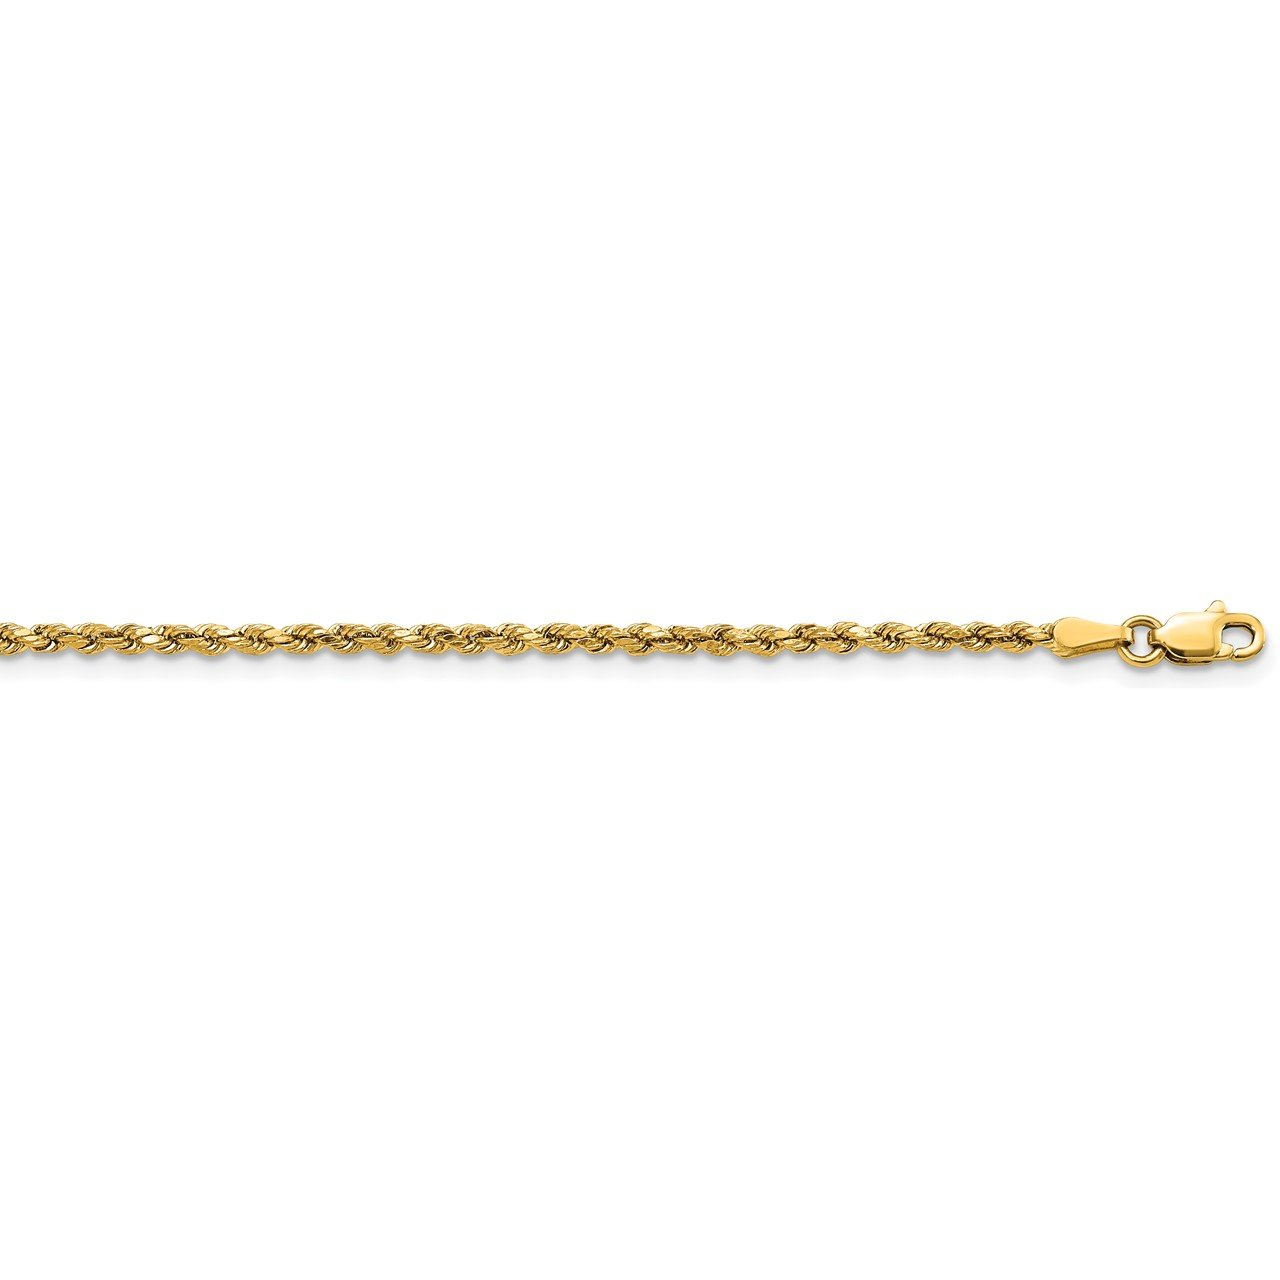 14k 2.25mm Semi-solid D/C Rope Chain